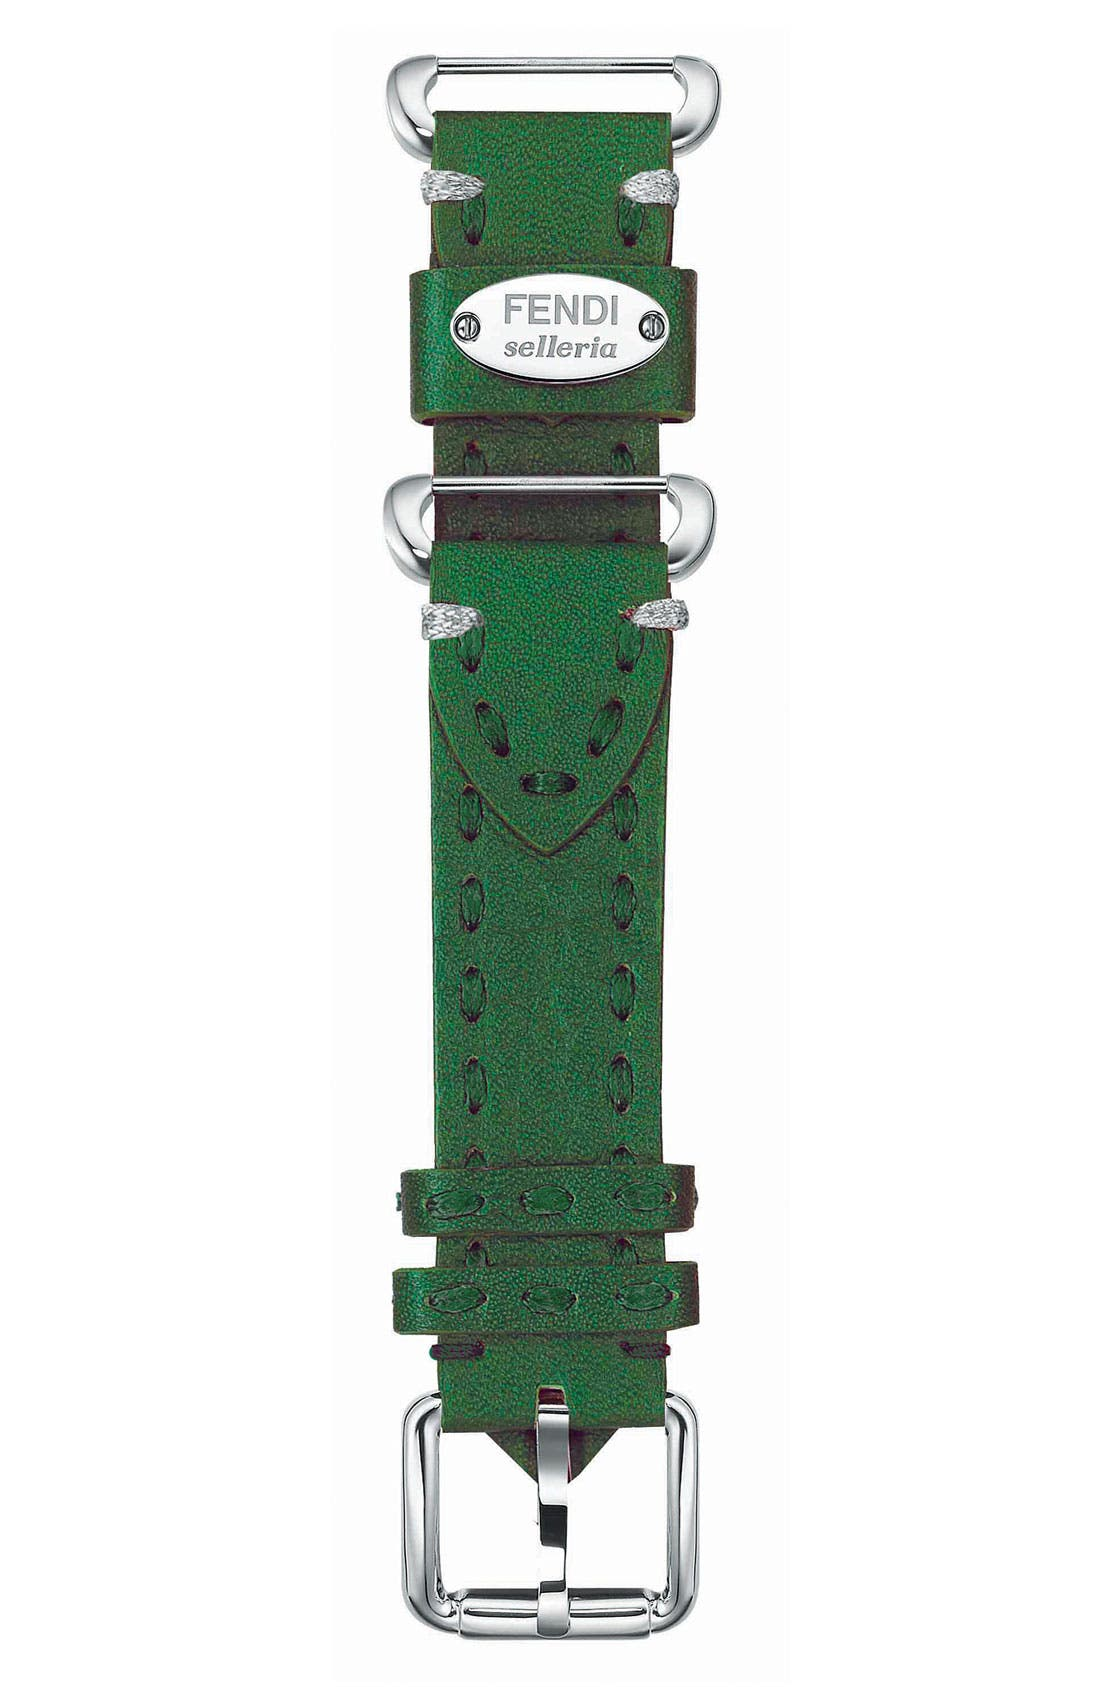 Alternate Image 1 Selected - Fendi 'Selleria' 18mm Watch Strap